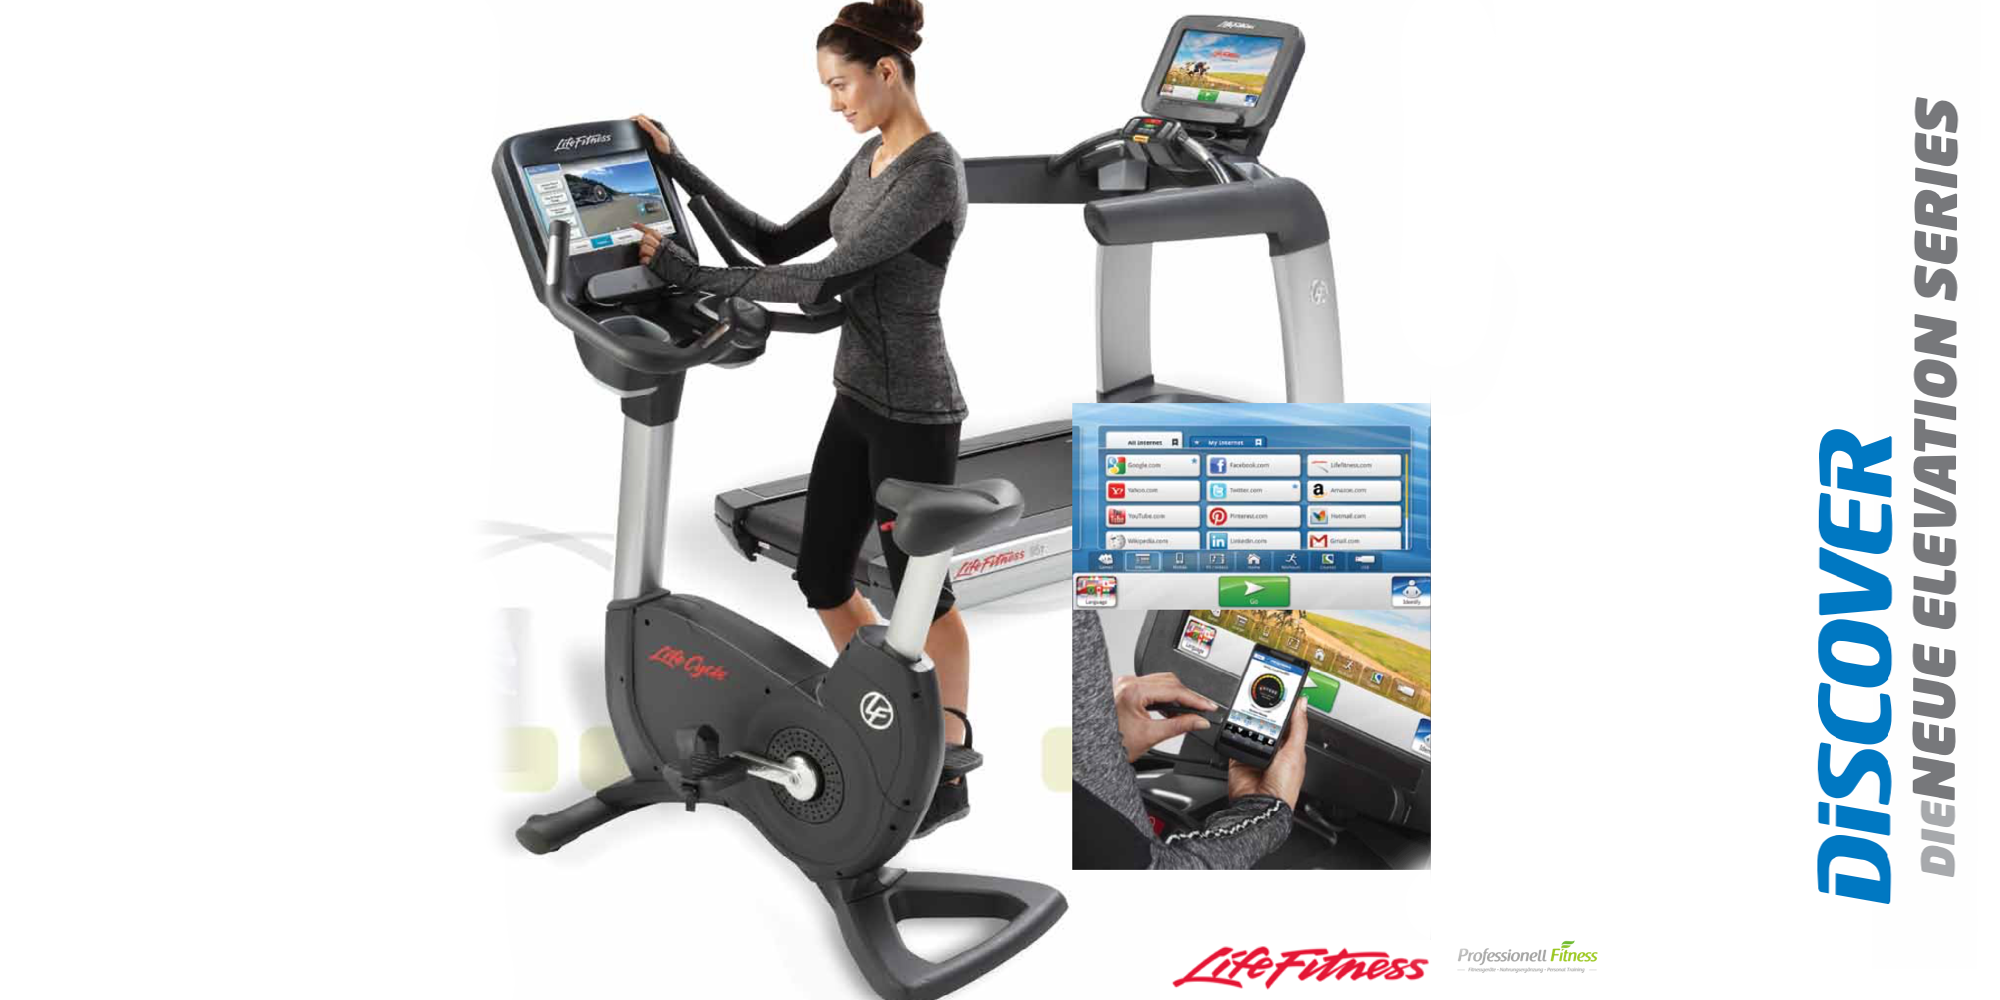 ergometer-multimdia-life-fitness